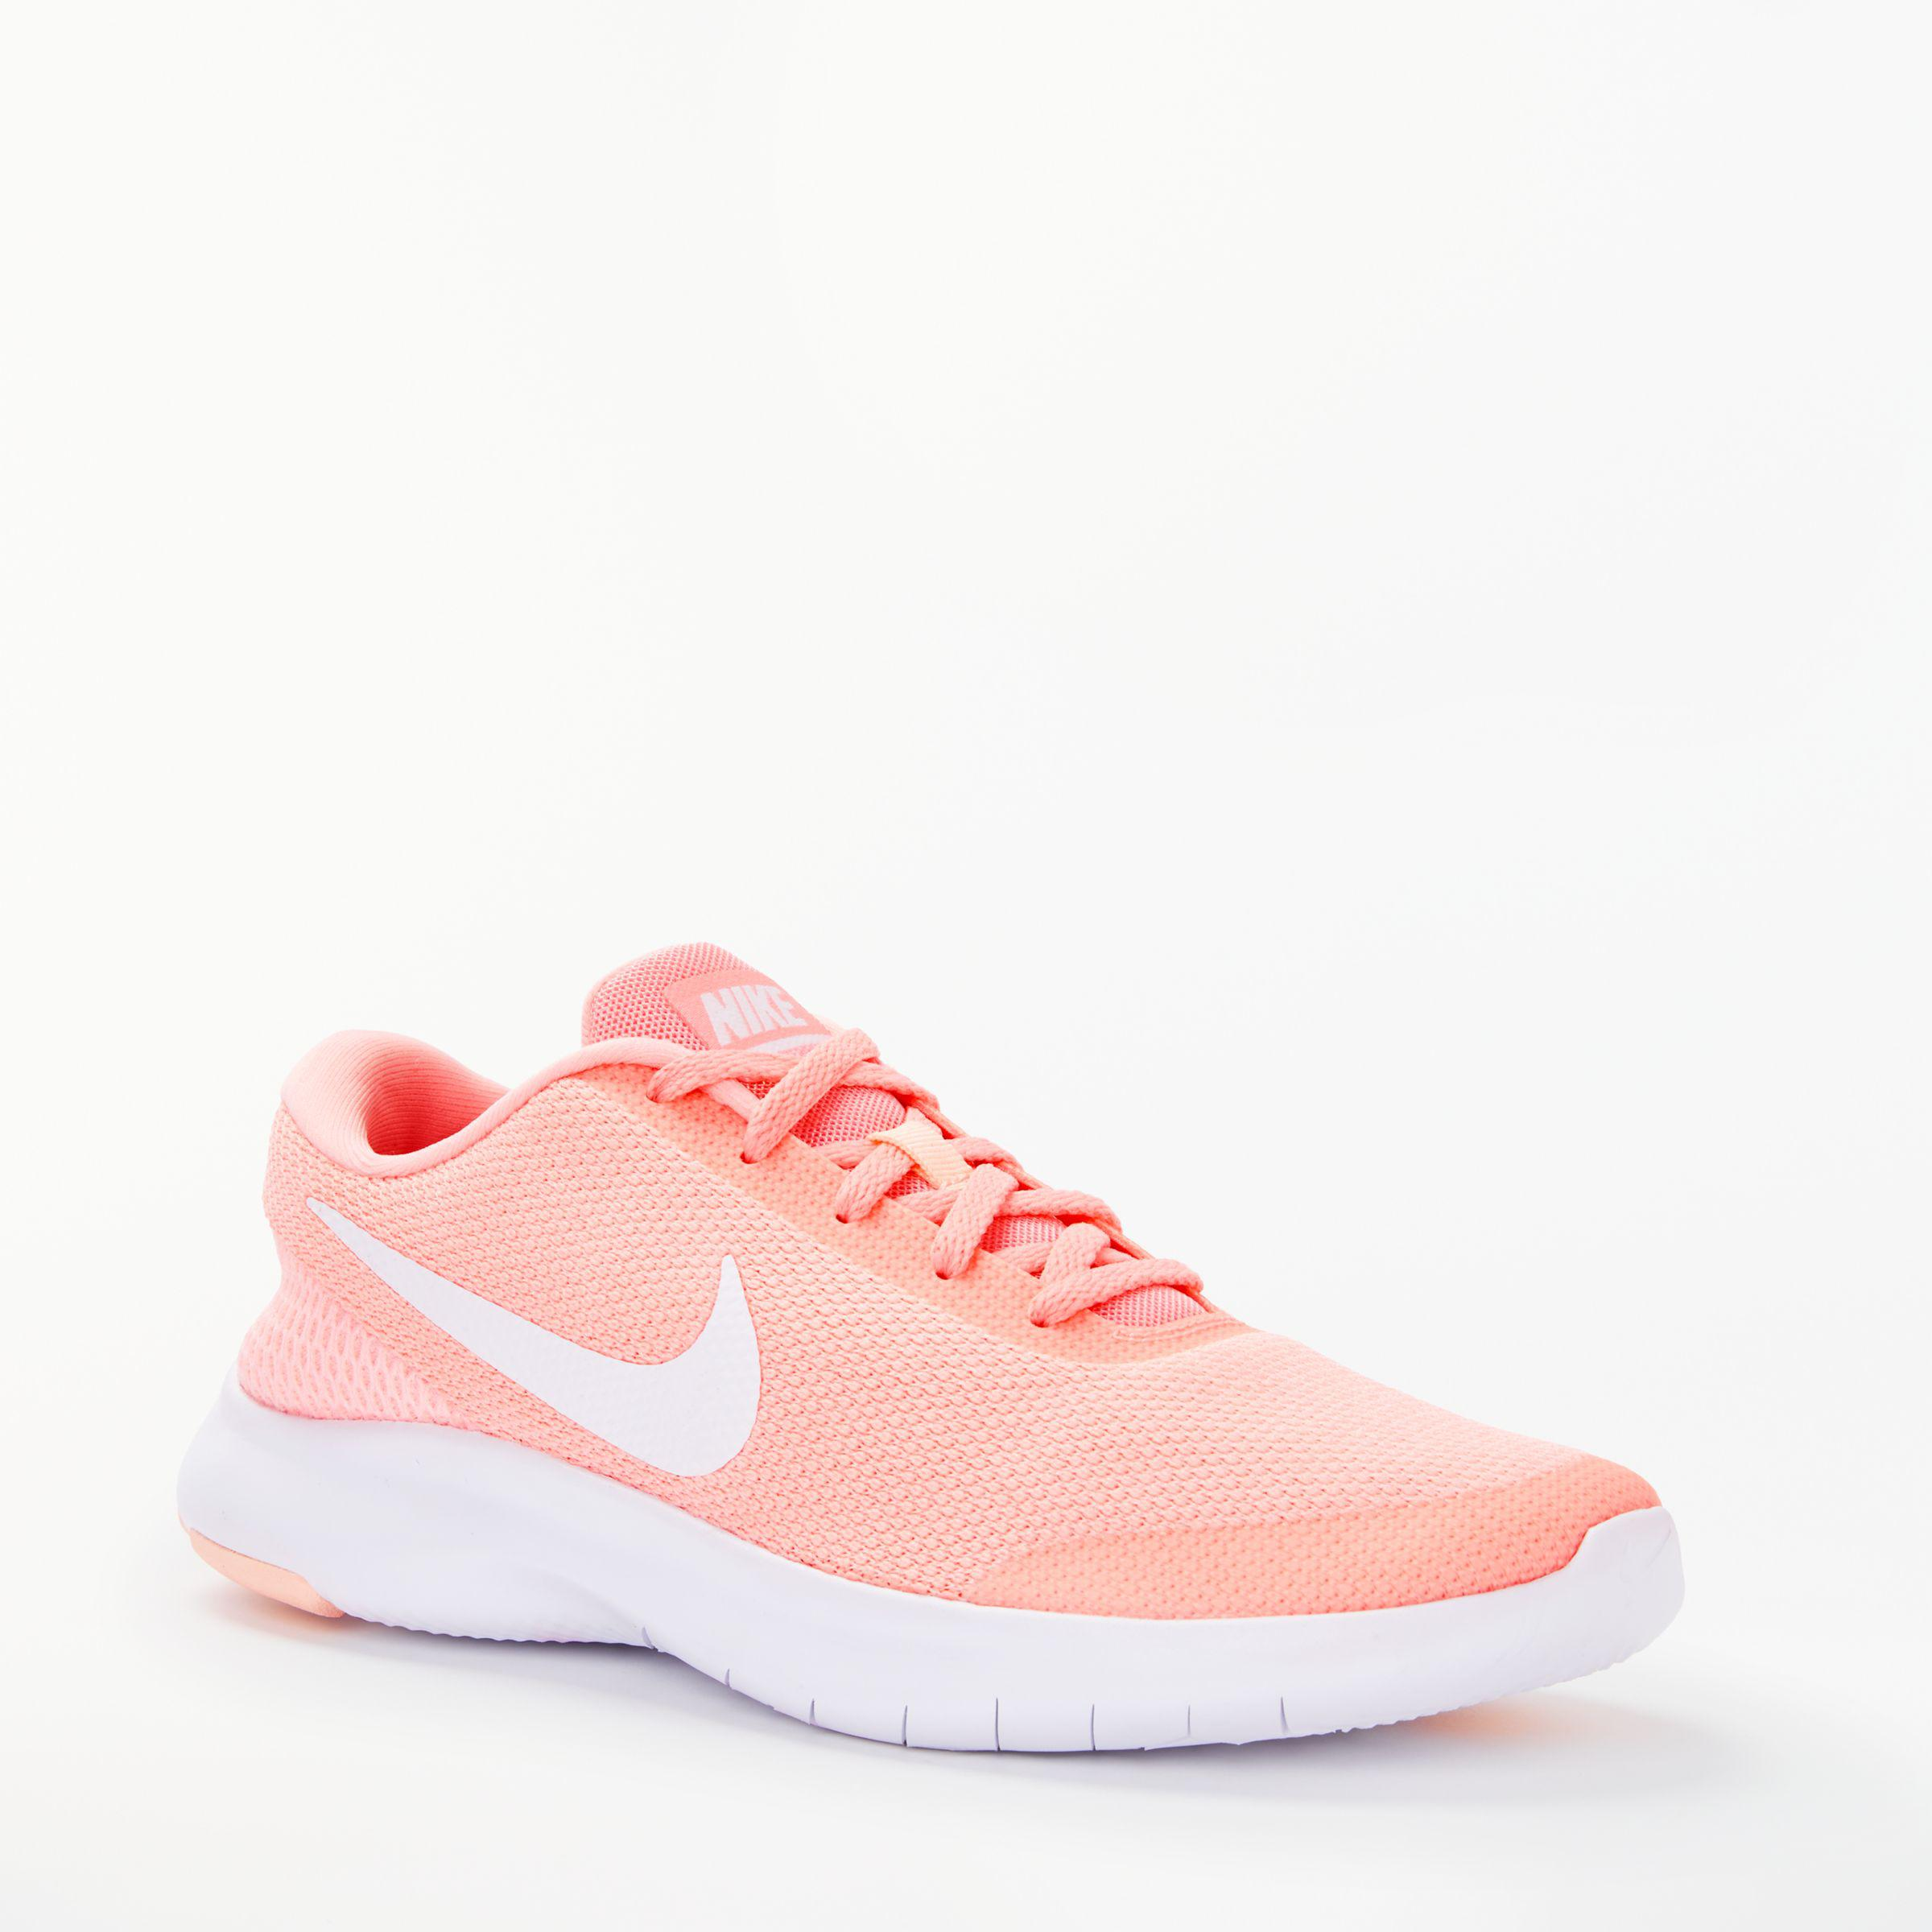 Nike Flex Experience Rn 7 Women s Running Shoes in Pink - Lyst 77b609722